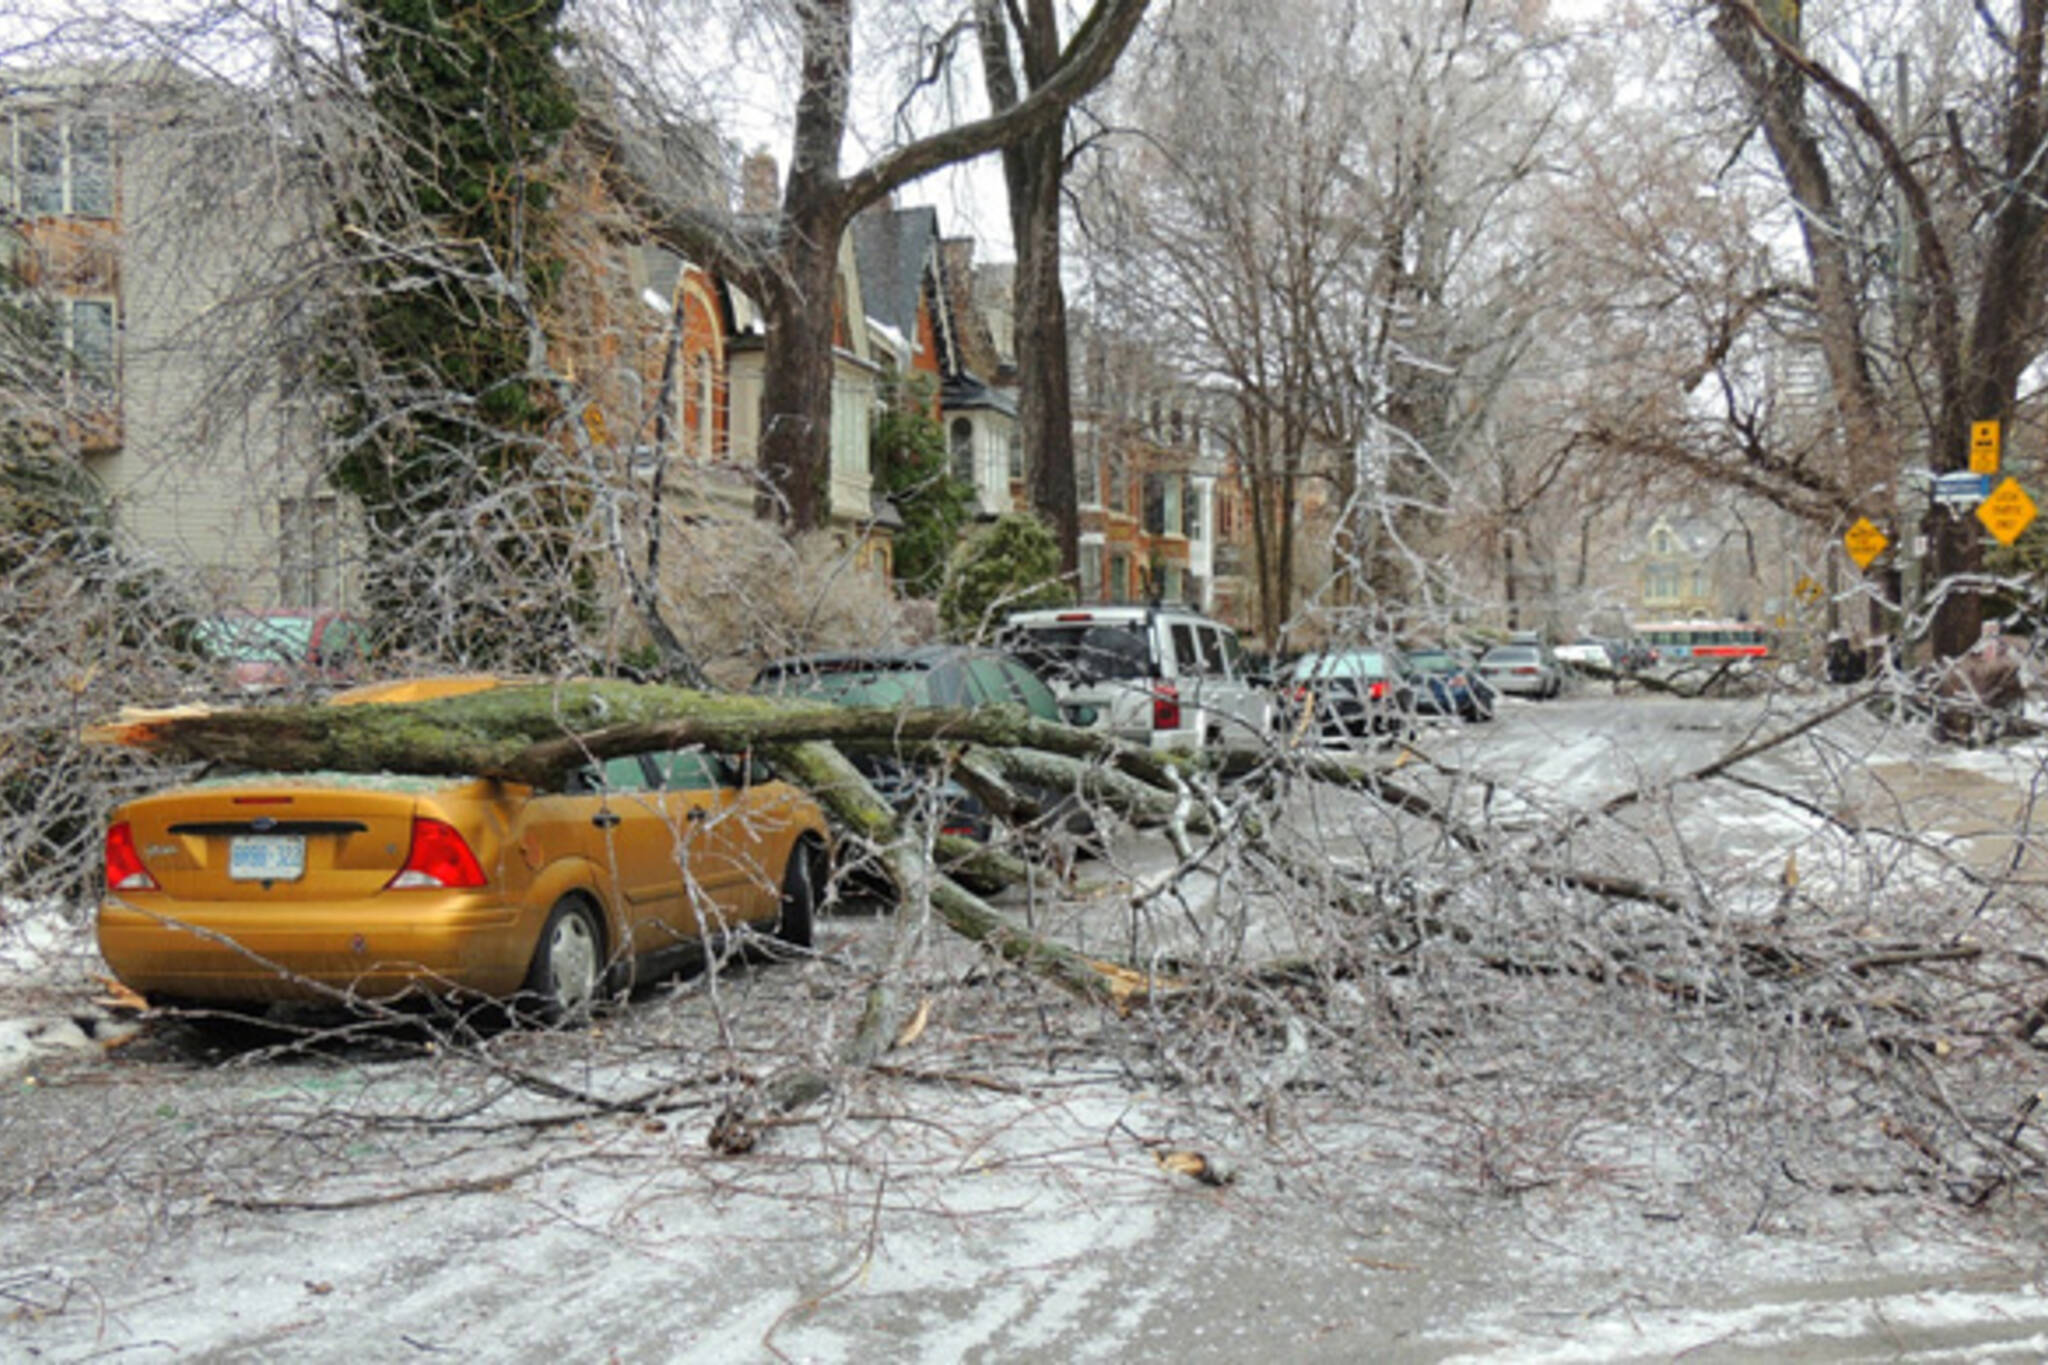 20 frozen photos of the ice storm aftermath in Toronto